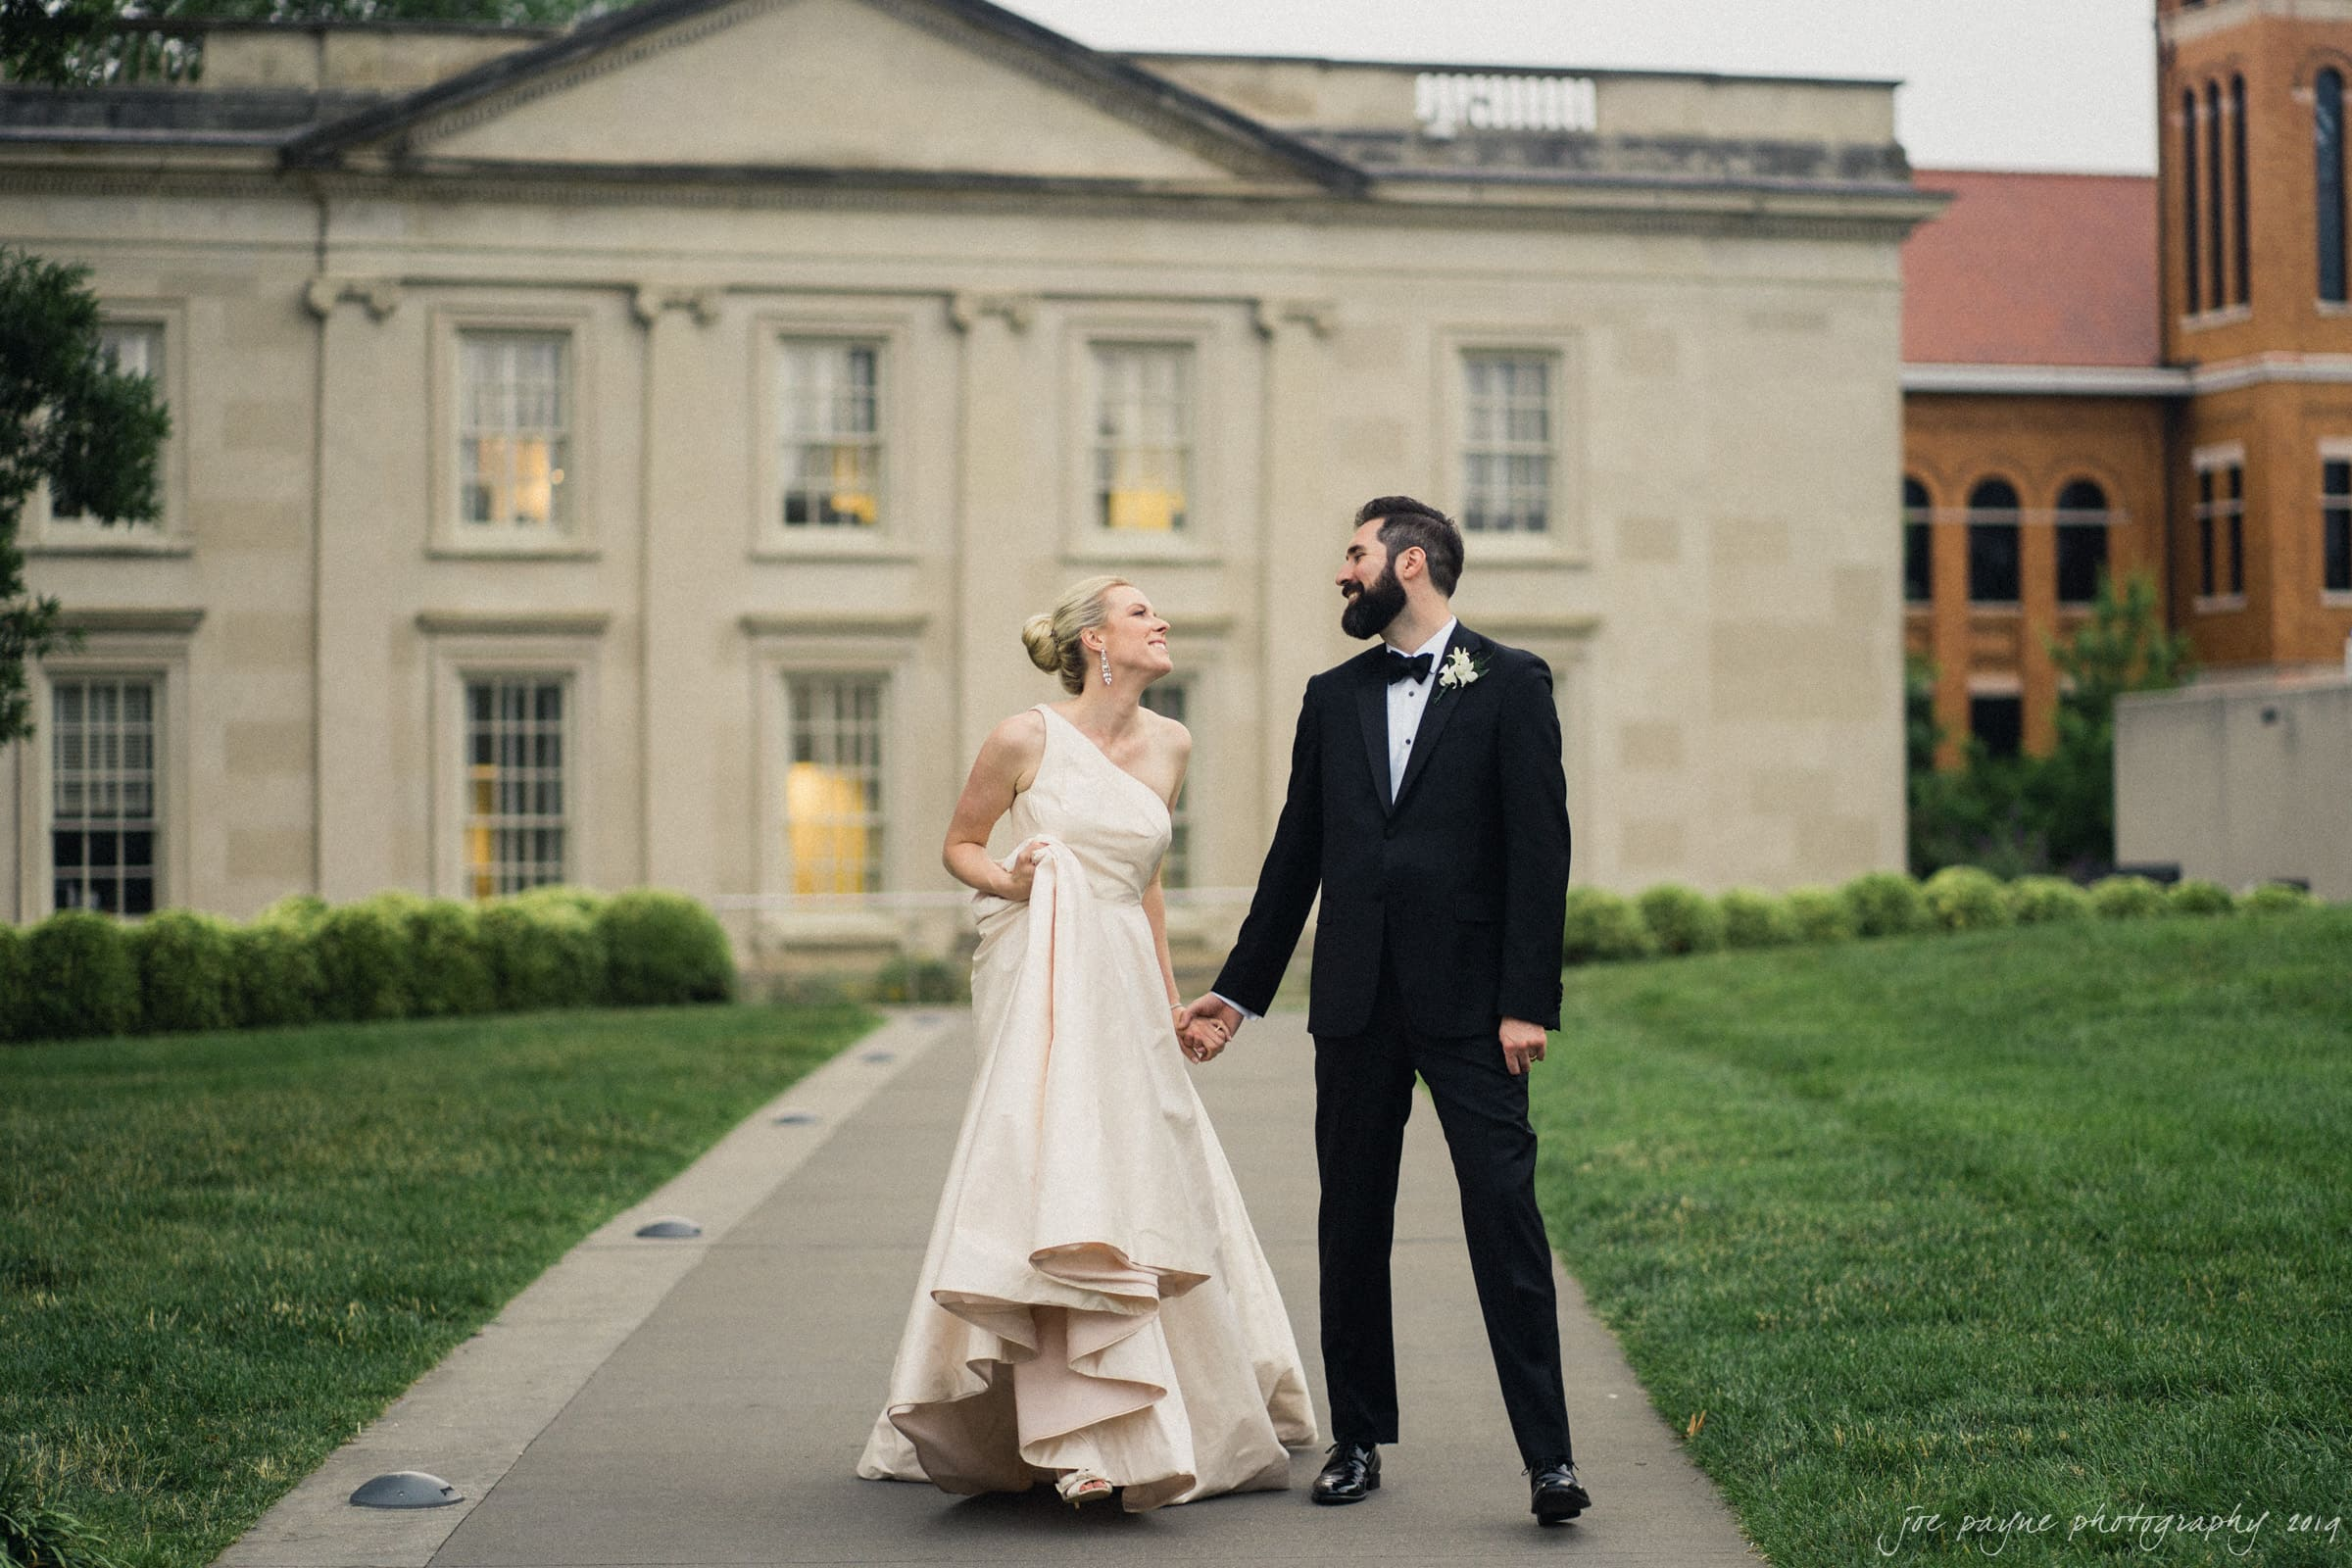 monumental church & vmfa richmond wedding – mary catherine & peter